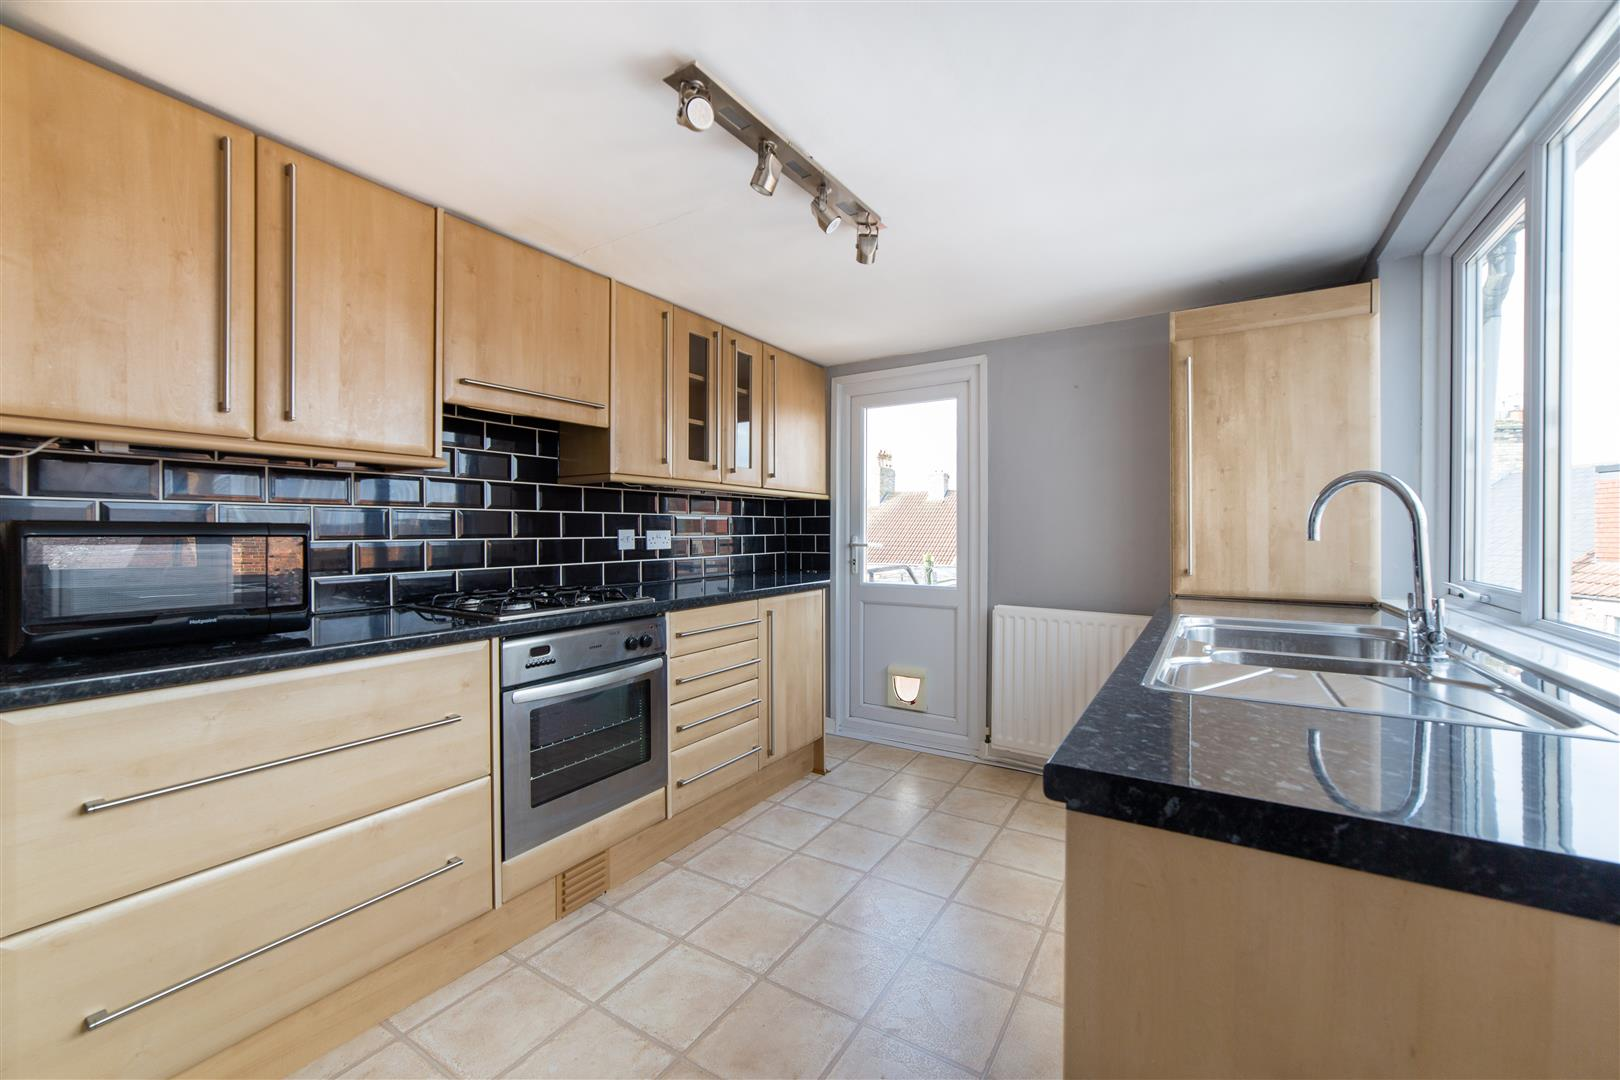 2 bed apartment to rent in North Shields, NE30 2HG, NE30